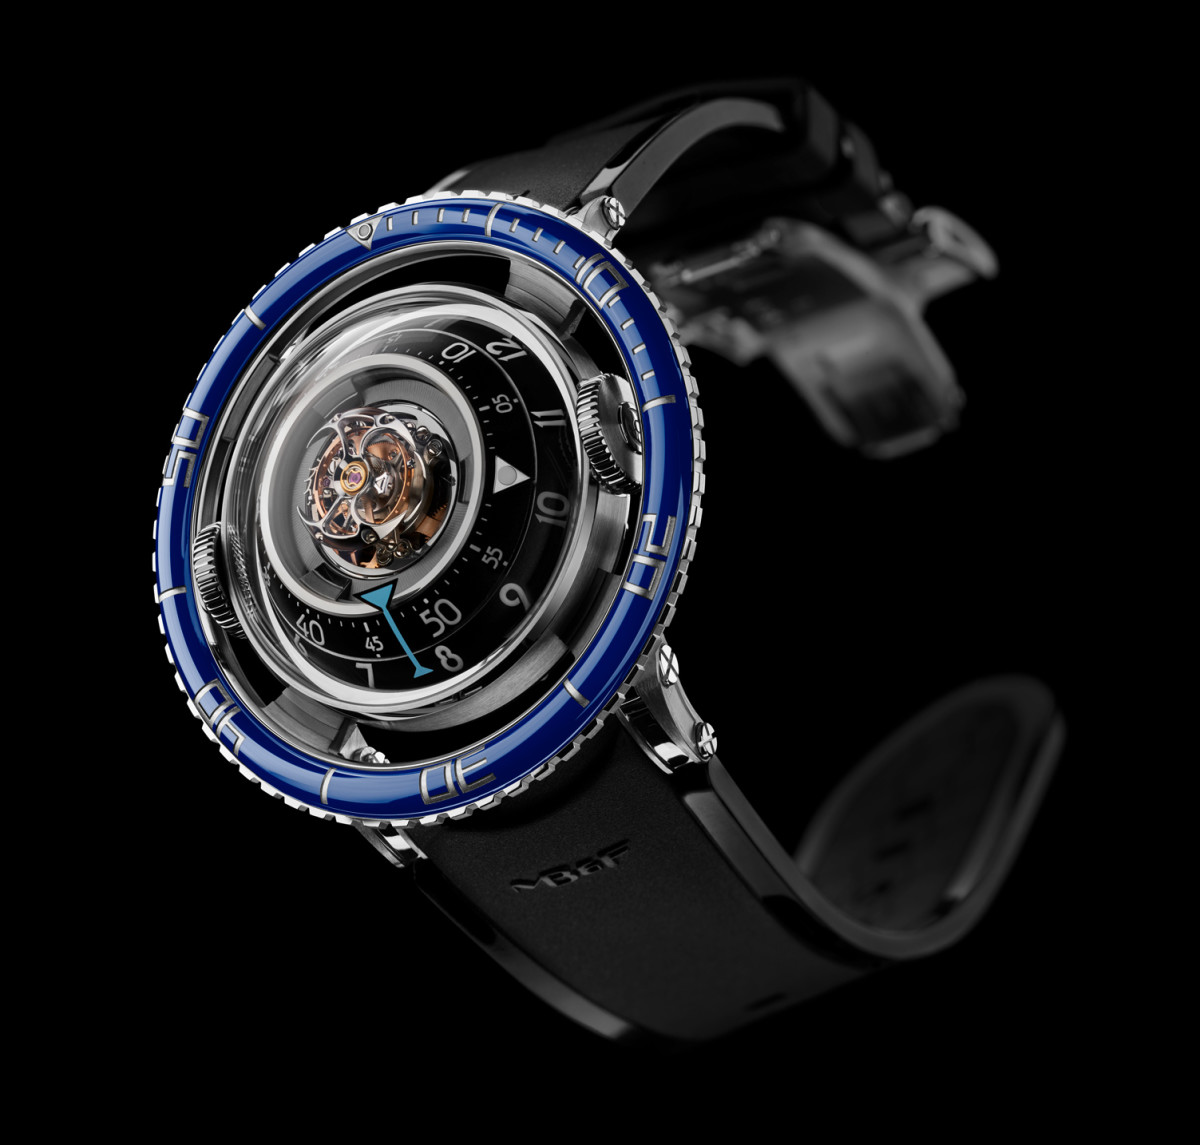 MB&F create their first dive watch, the HM7 Aquapod